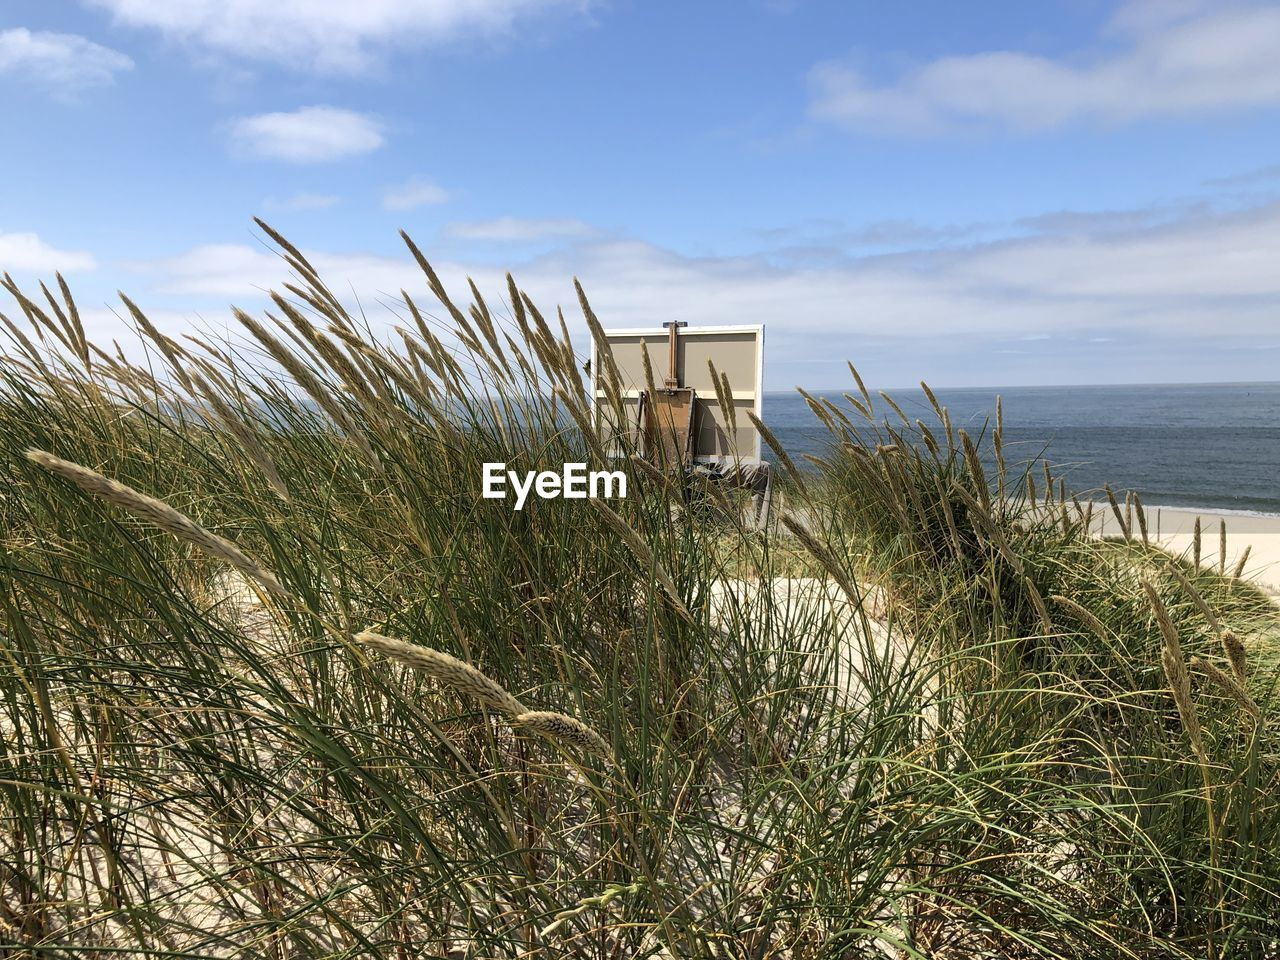 sky, plant, sea, water, cloud - sky, land, beach, nature, scenics - nature, architecture, beauty in nature, grass, tranquility, growth, built structure, tranquil scene, day, no people, horizon, horizon over water, outdoors, marram grass